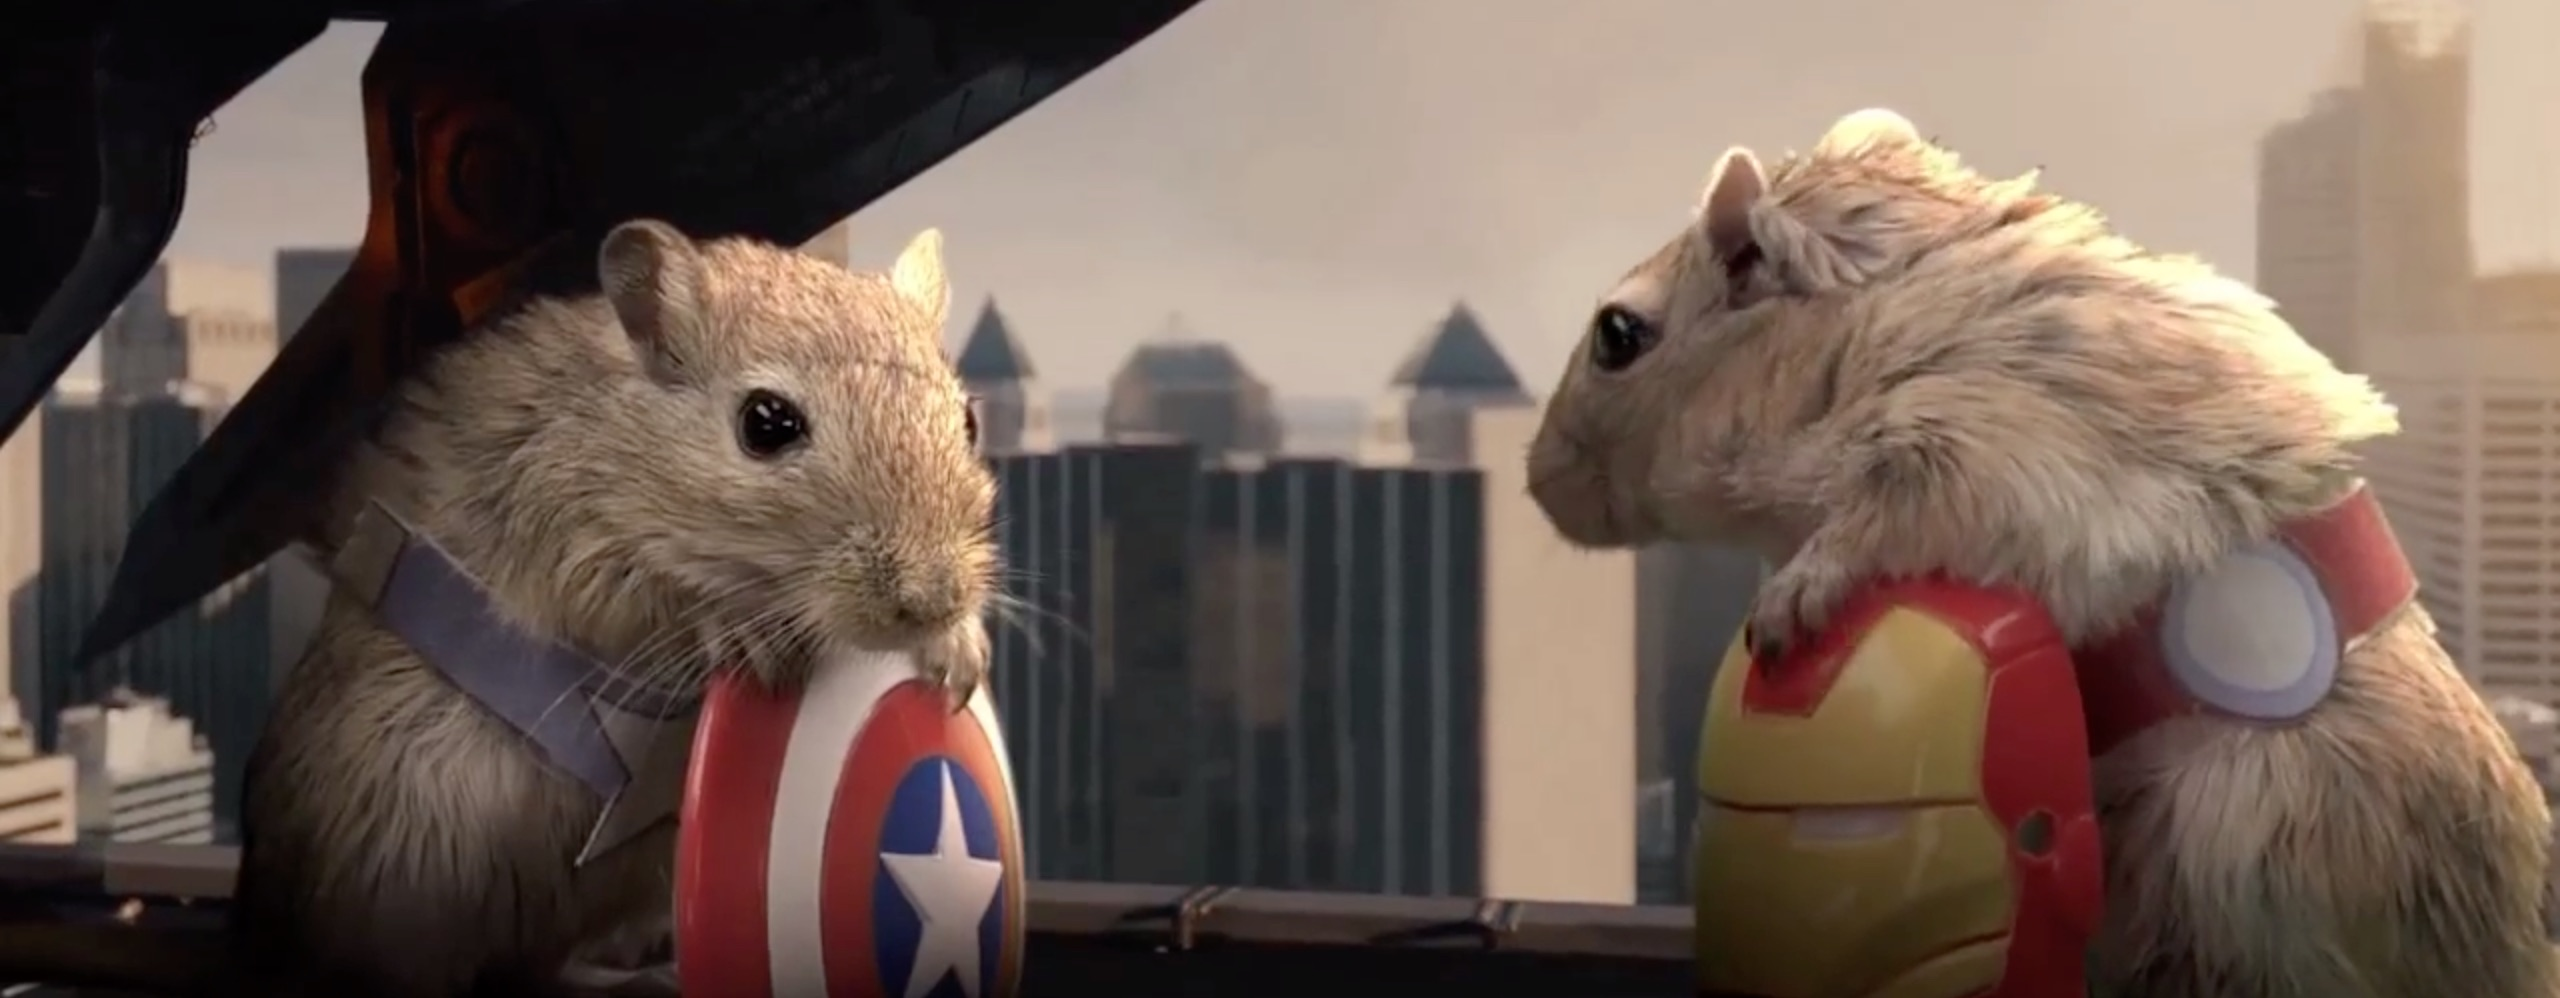 AvenGerbils is the funniest 'Avengers' spoof yet